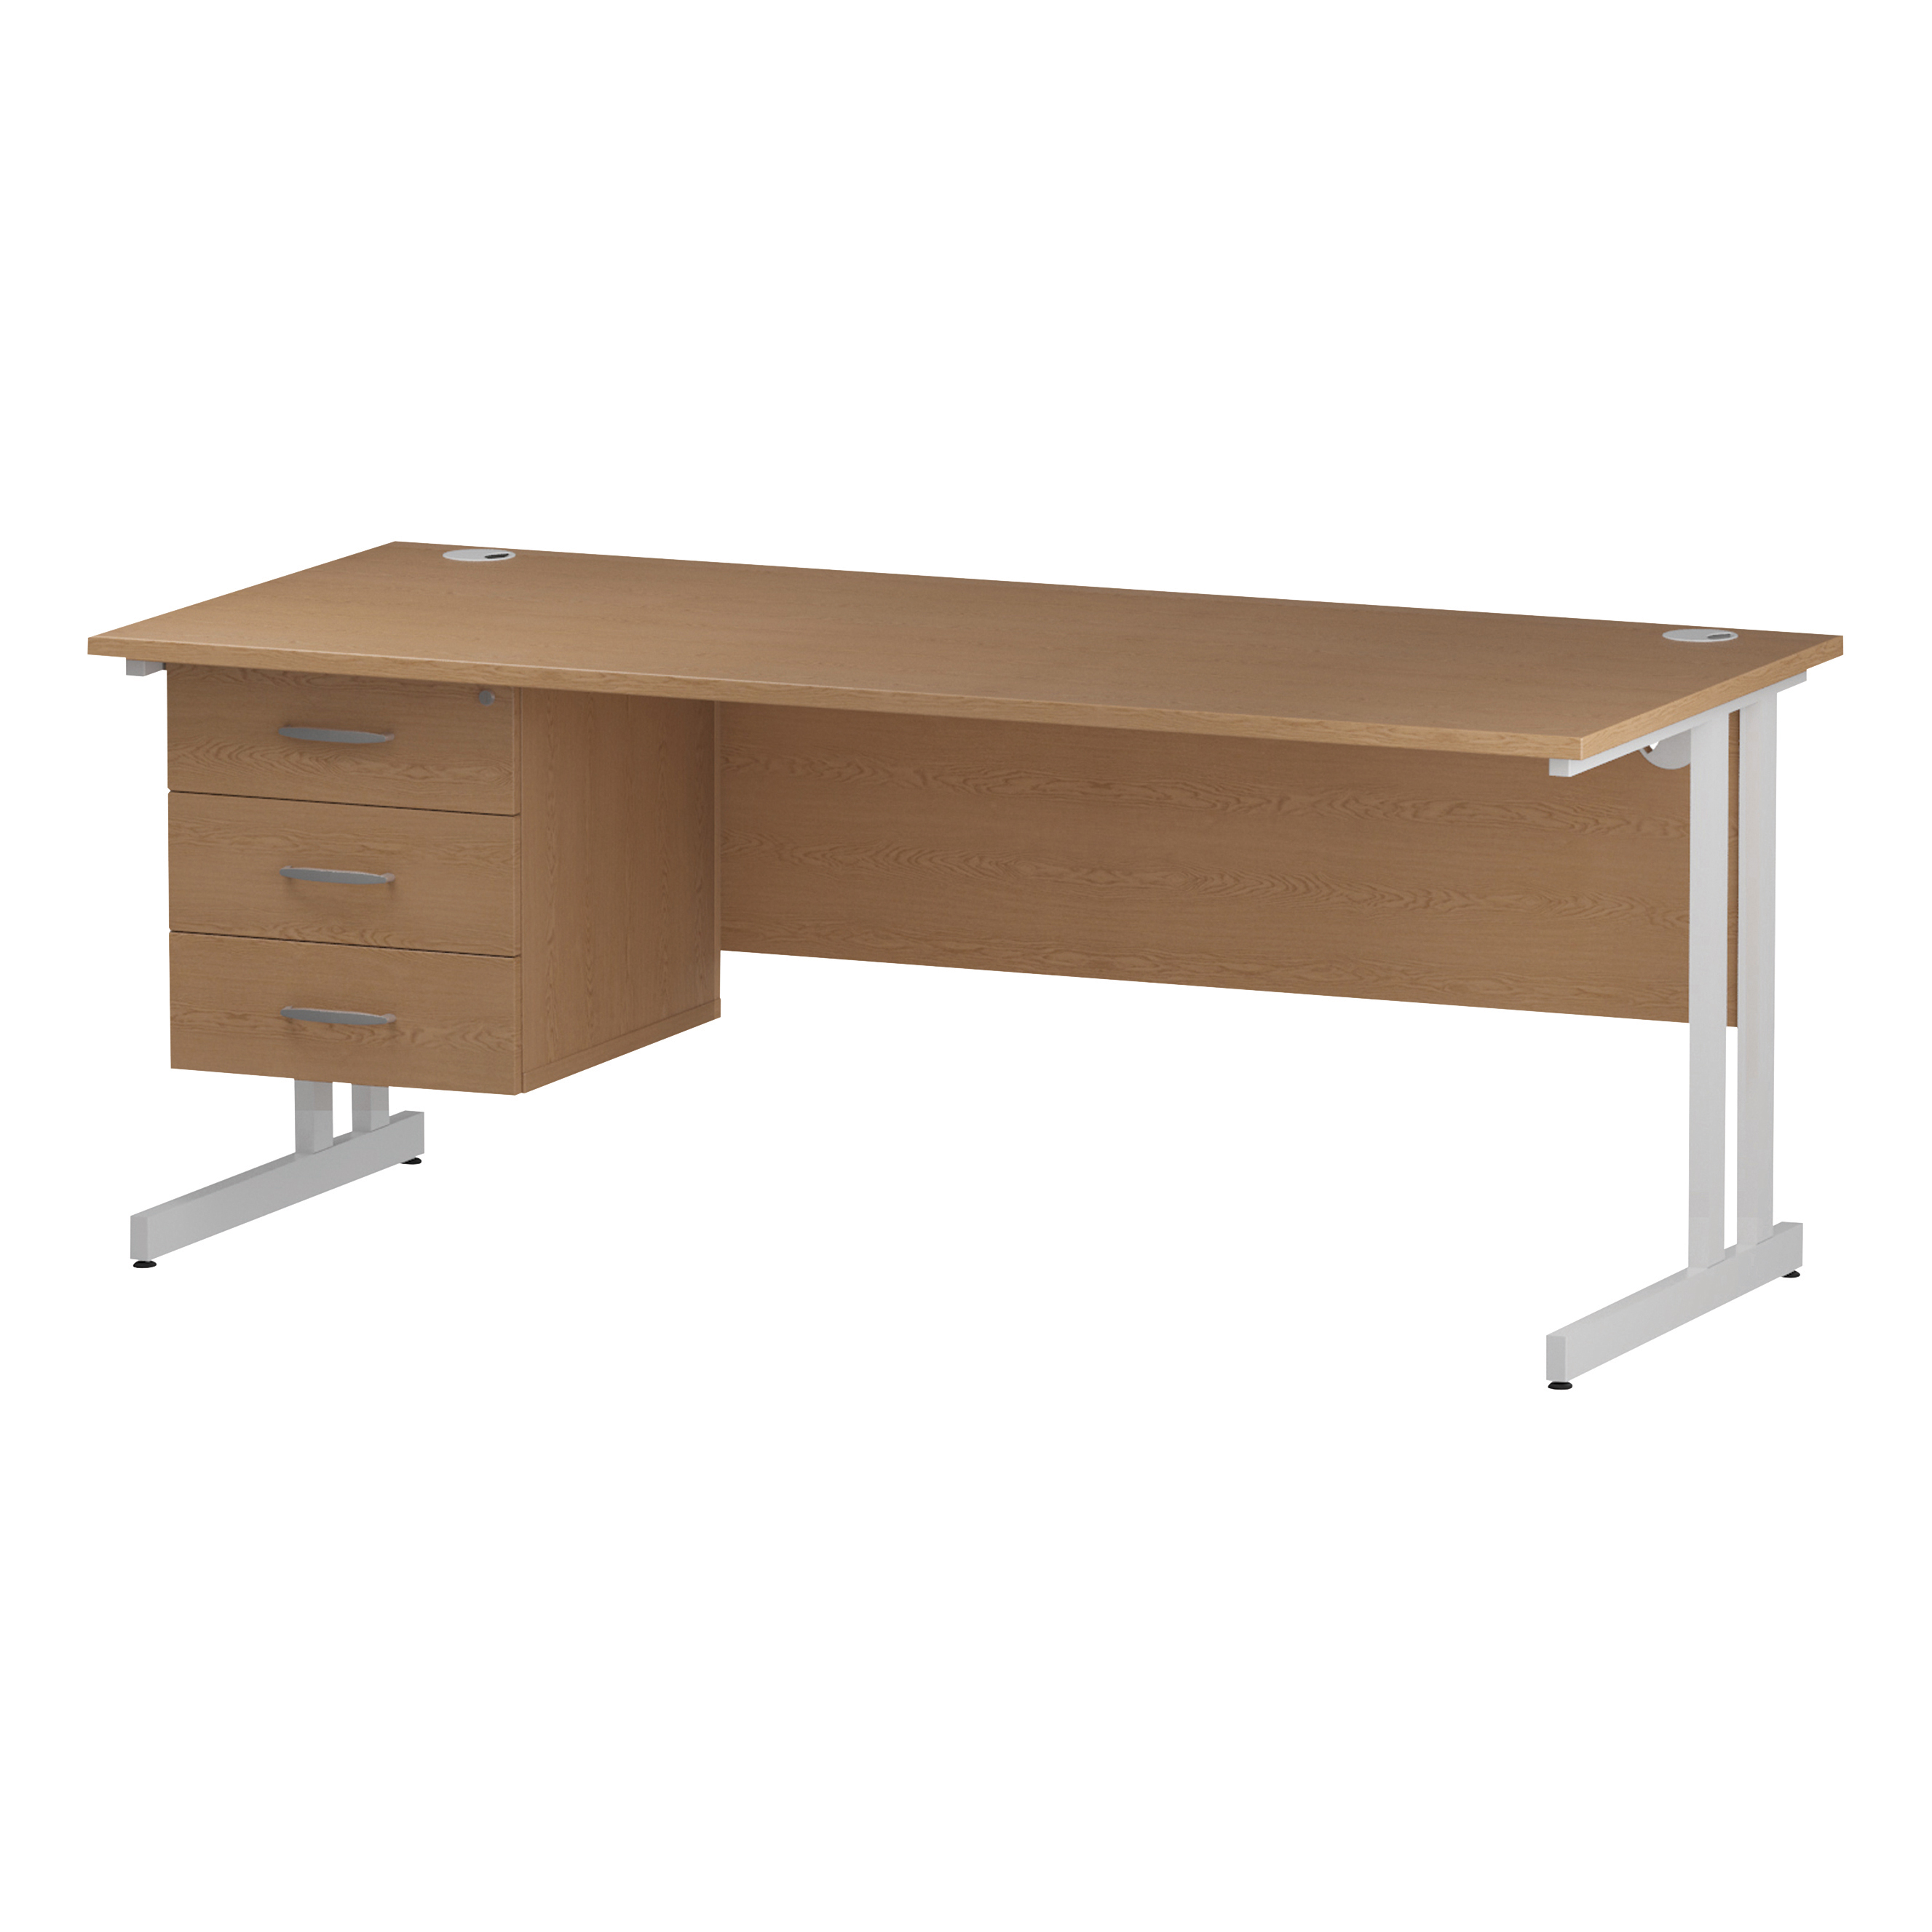 Trexus Rectangular Desk White Cantilever Leg 1800x800mm Fixed Pedestal 3 Drawers Oak Ref I002672